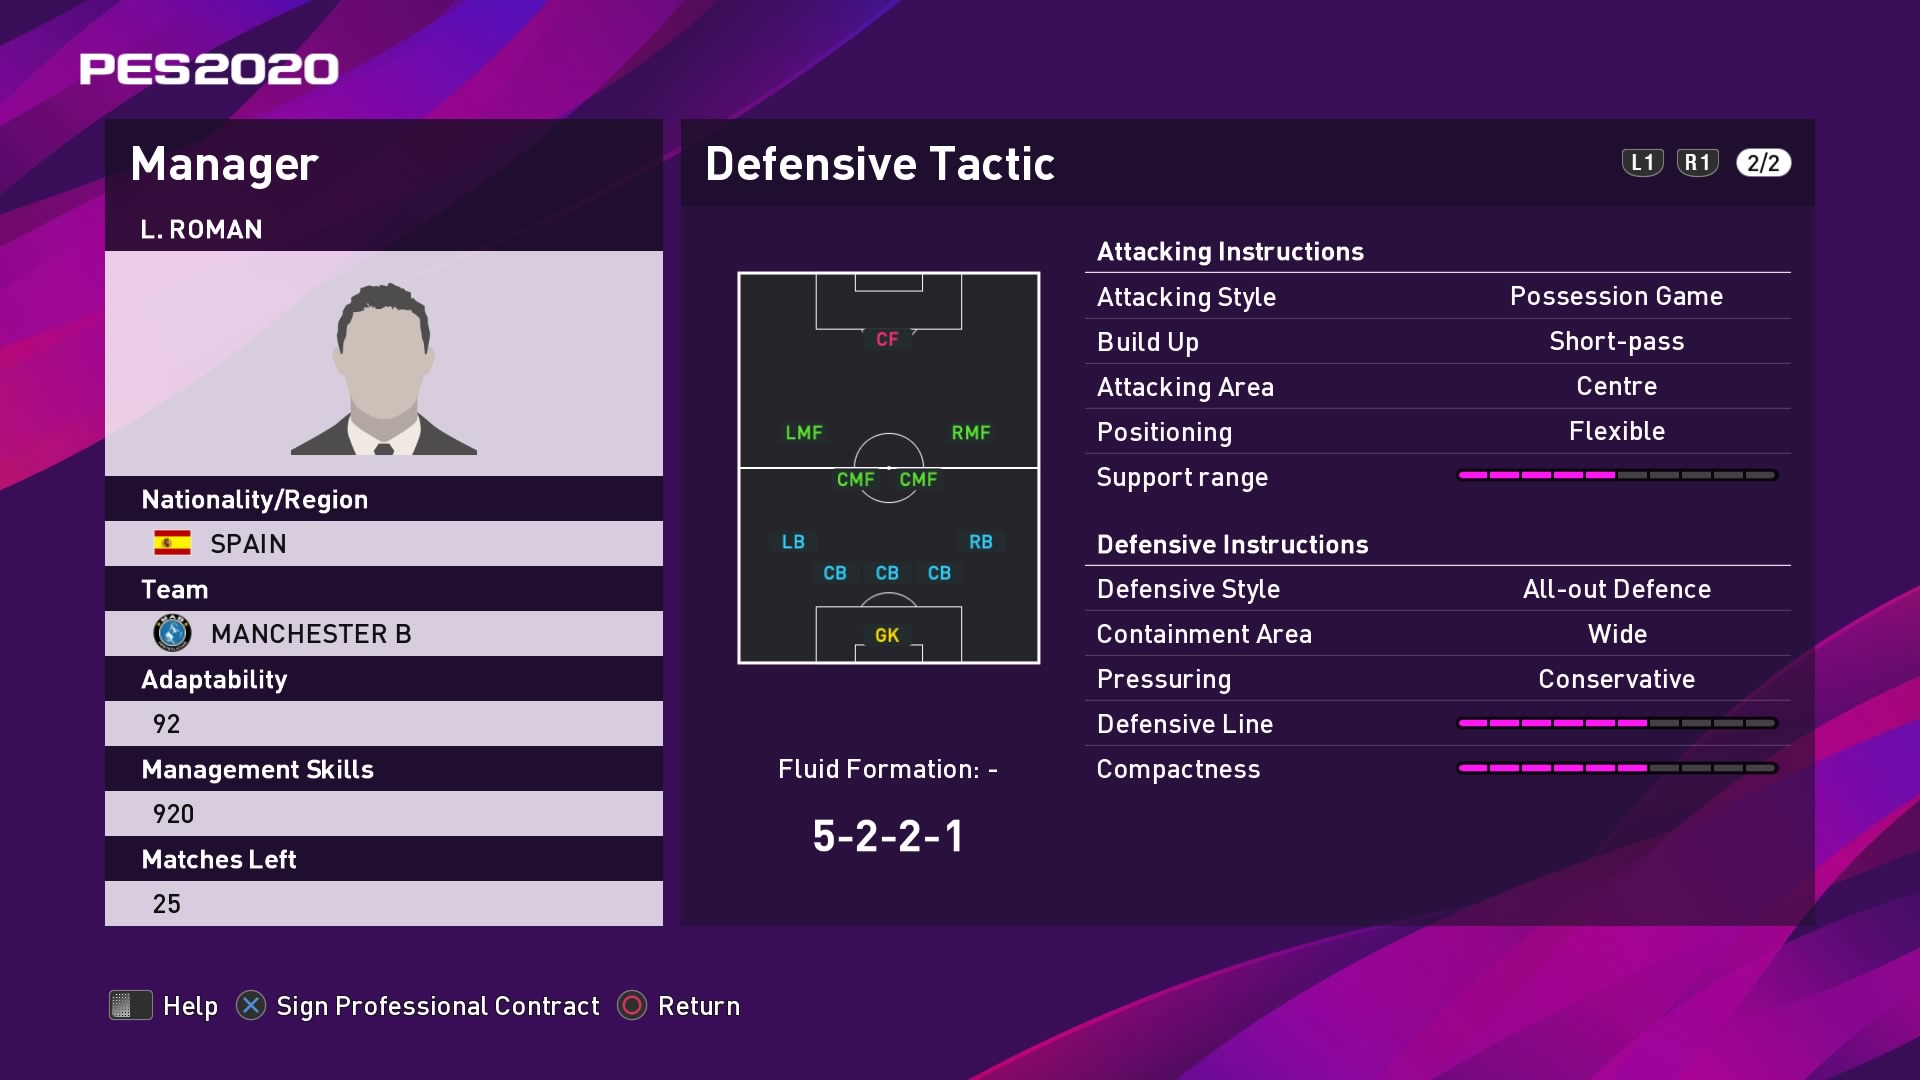 L. Roman (Pep Guardiola) Defensive Tactic in PES 2020 myClub